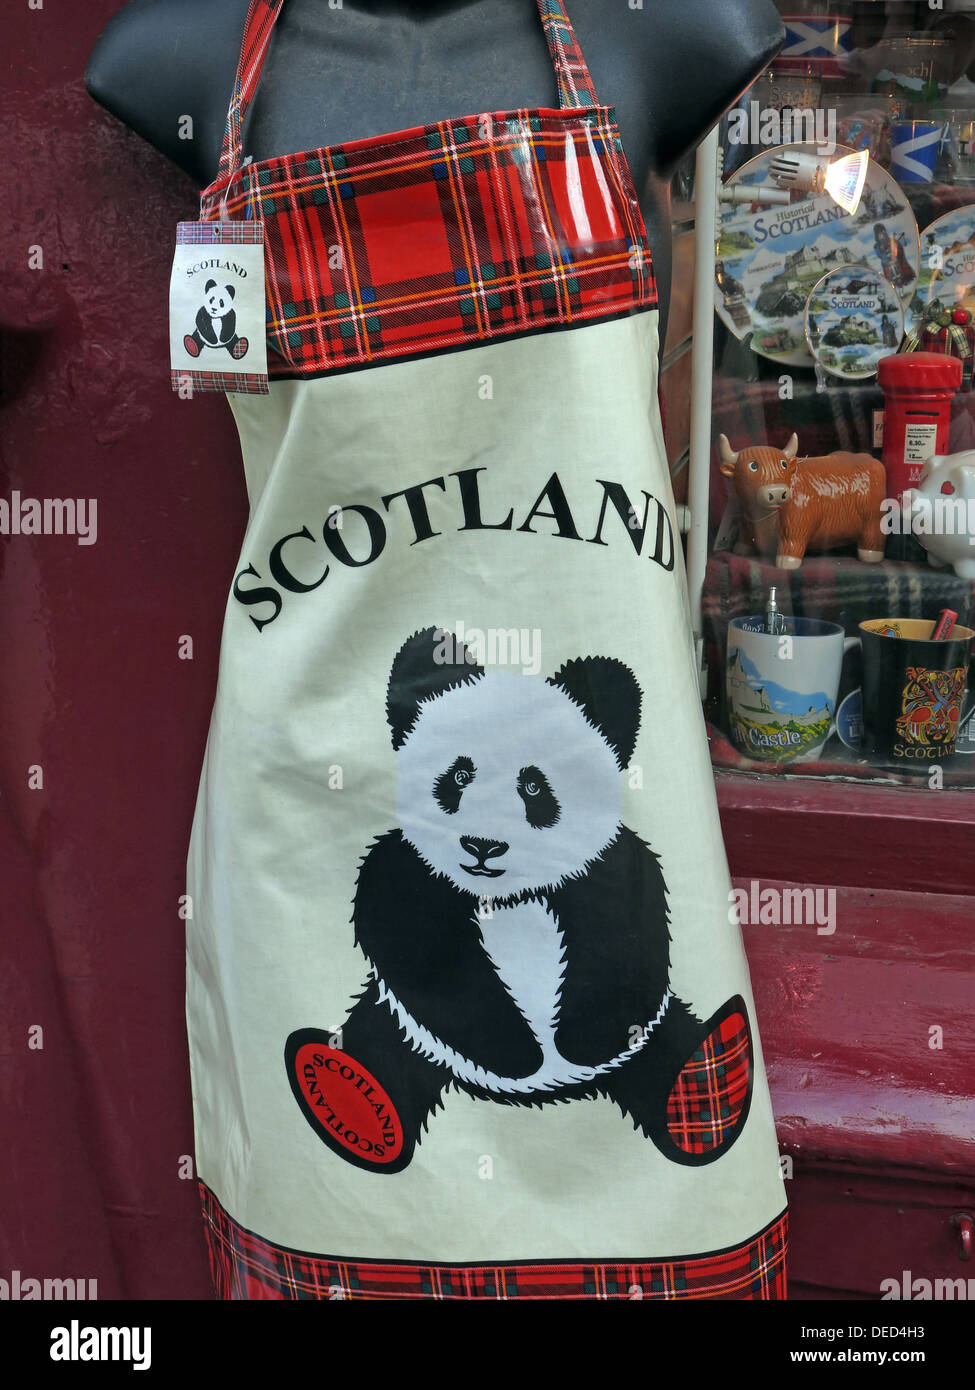 Panda gift Edinburgh Scotland PVC Kitchen Apron Souvenir - Stock Image